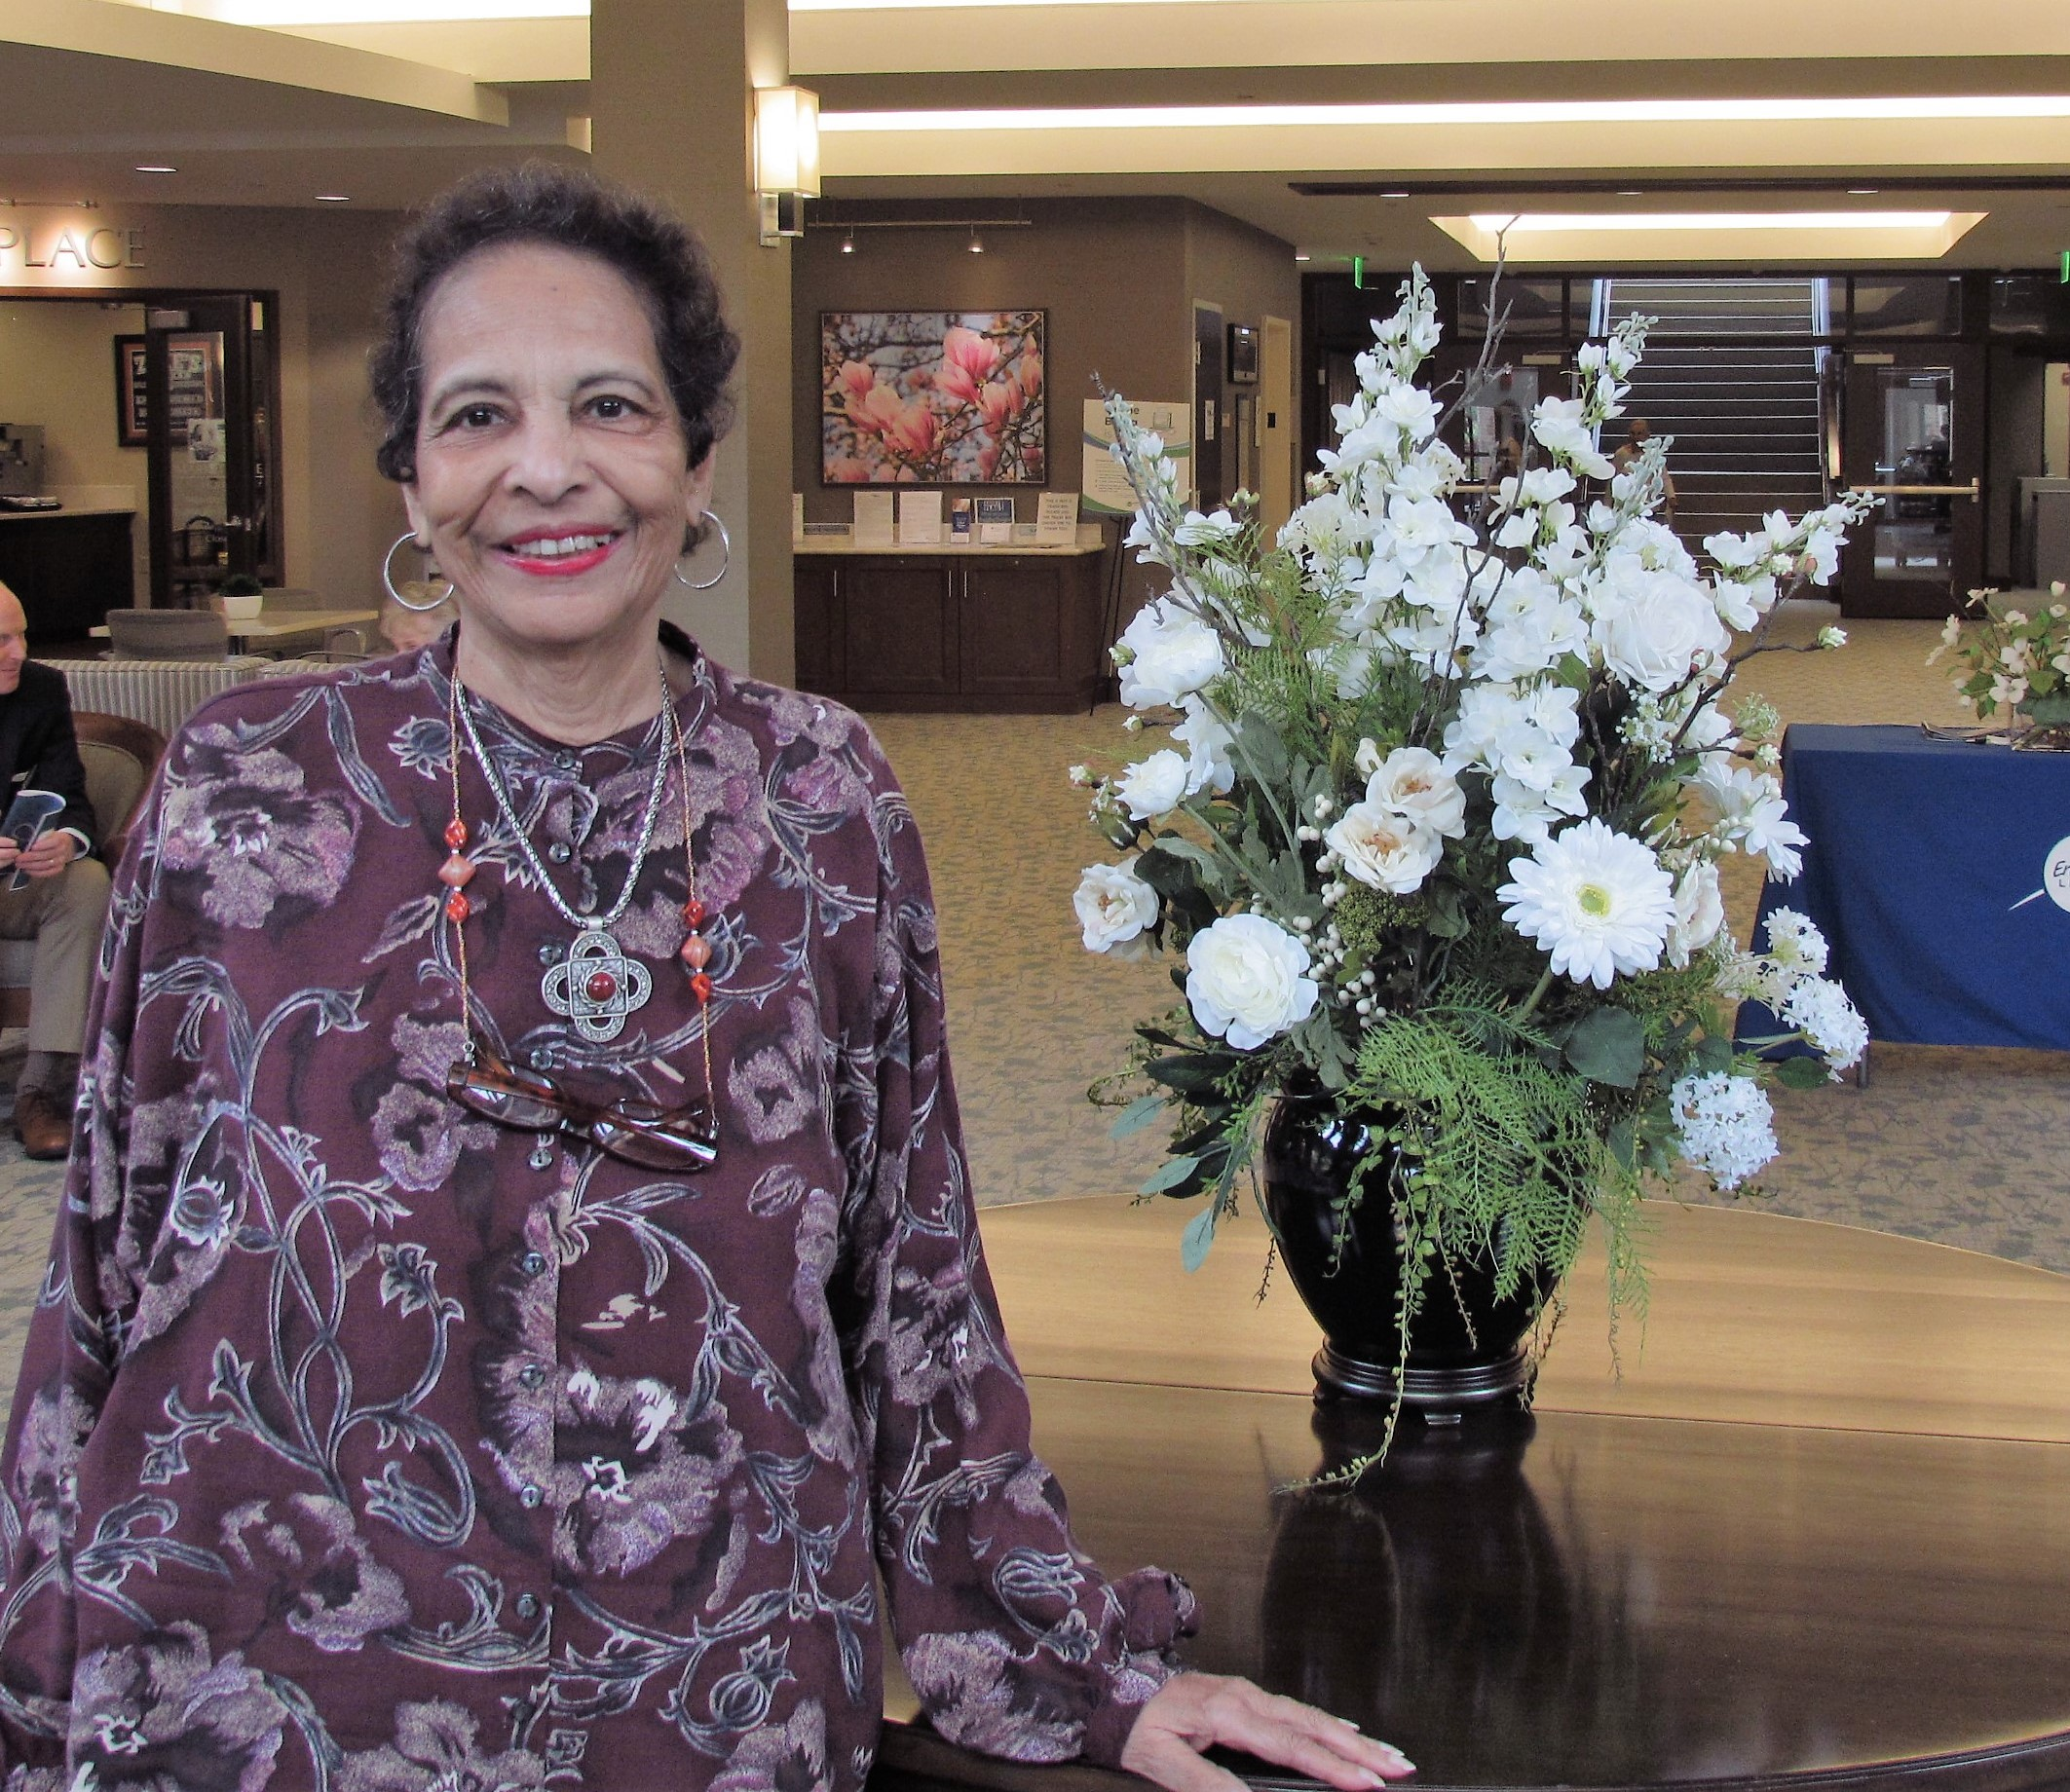 Francine Ashby enjoys a vibrant lifestyle and financial security at Charlestown retirement community.